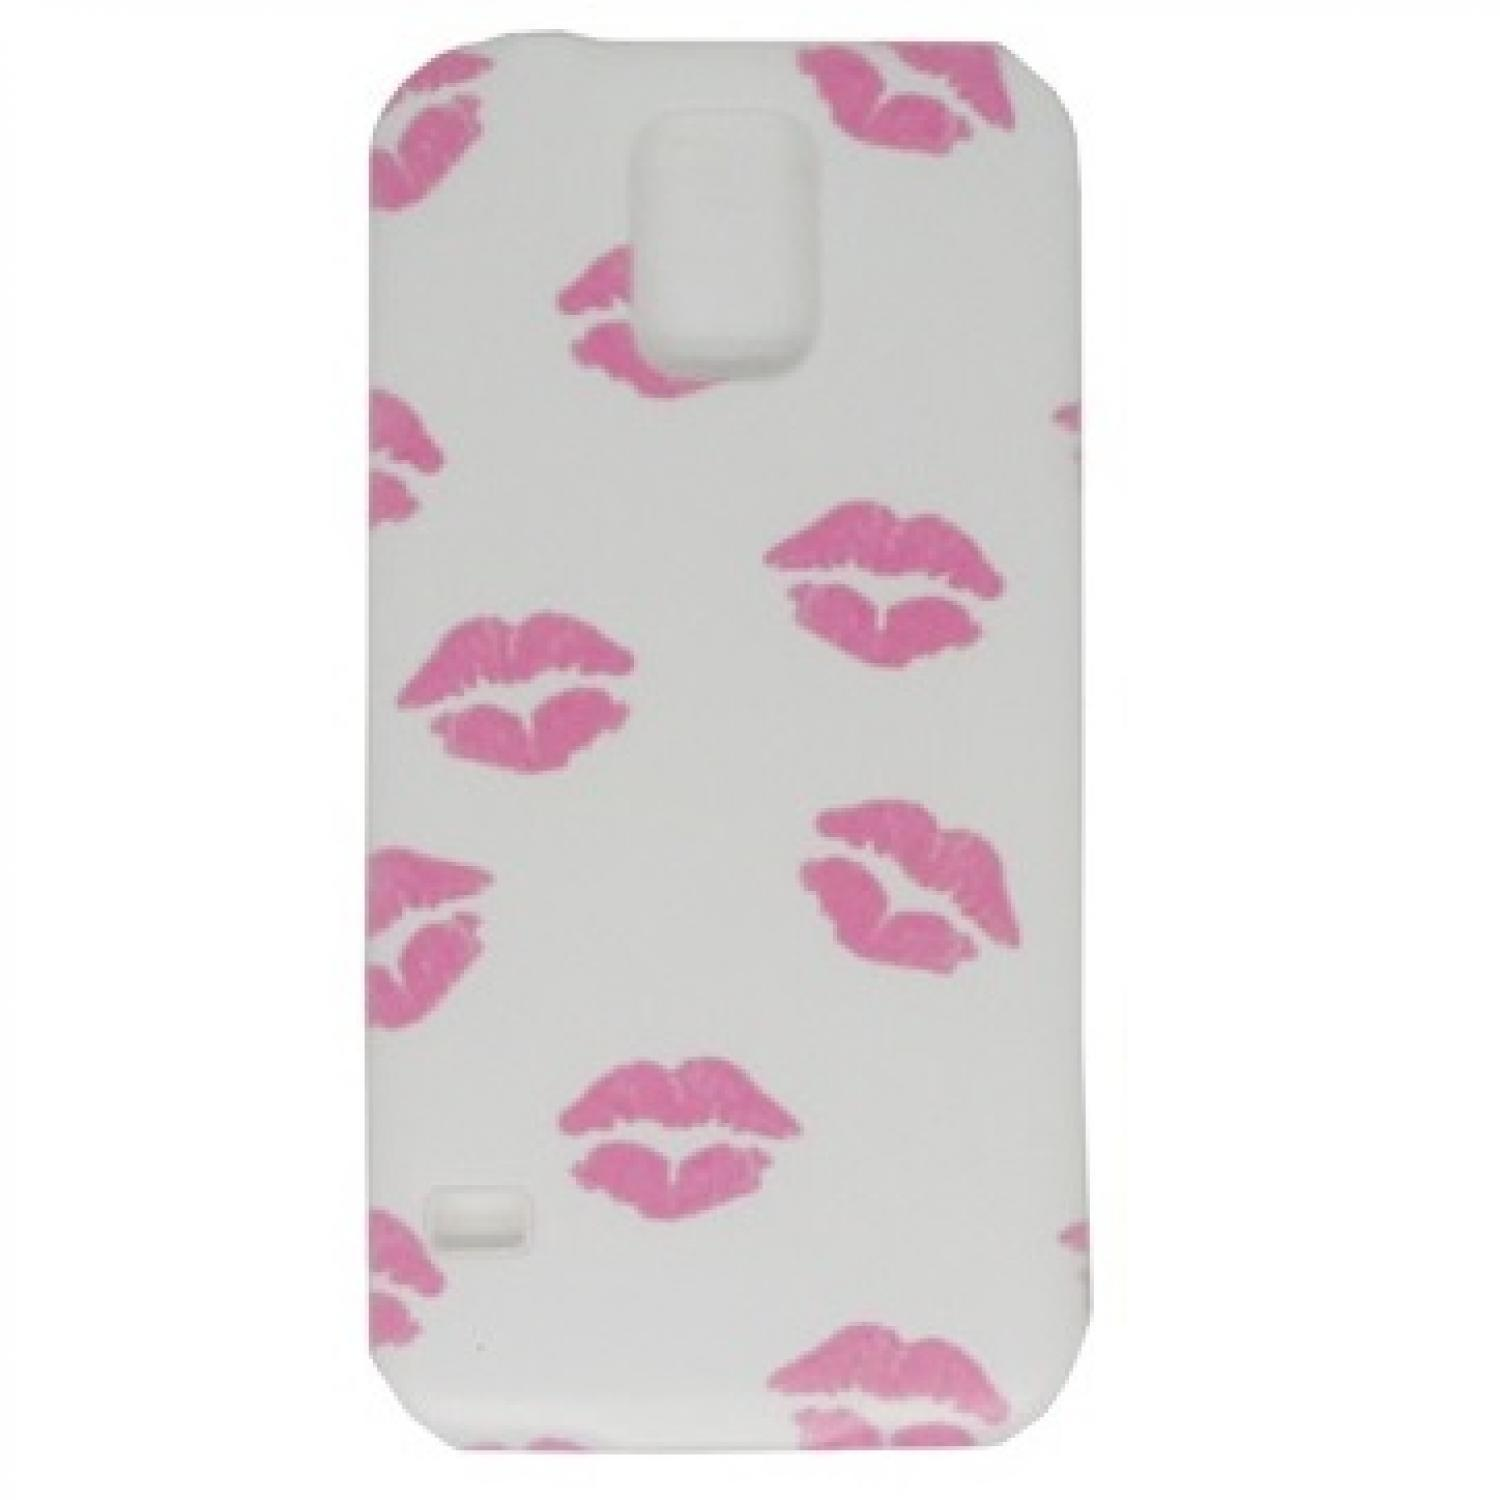 Casing Hp Painting Phone Plastic Case for Samsung Galaxy Note 3 Murah Lucu